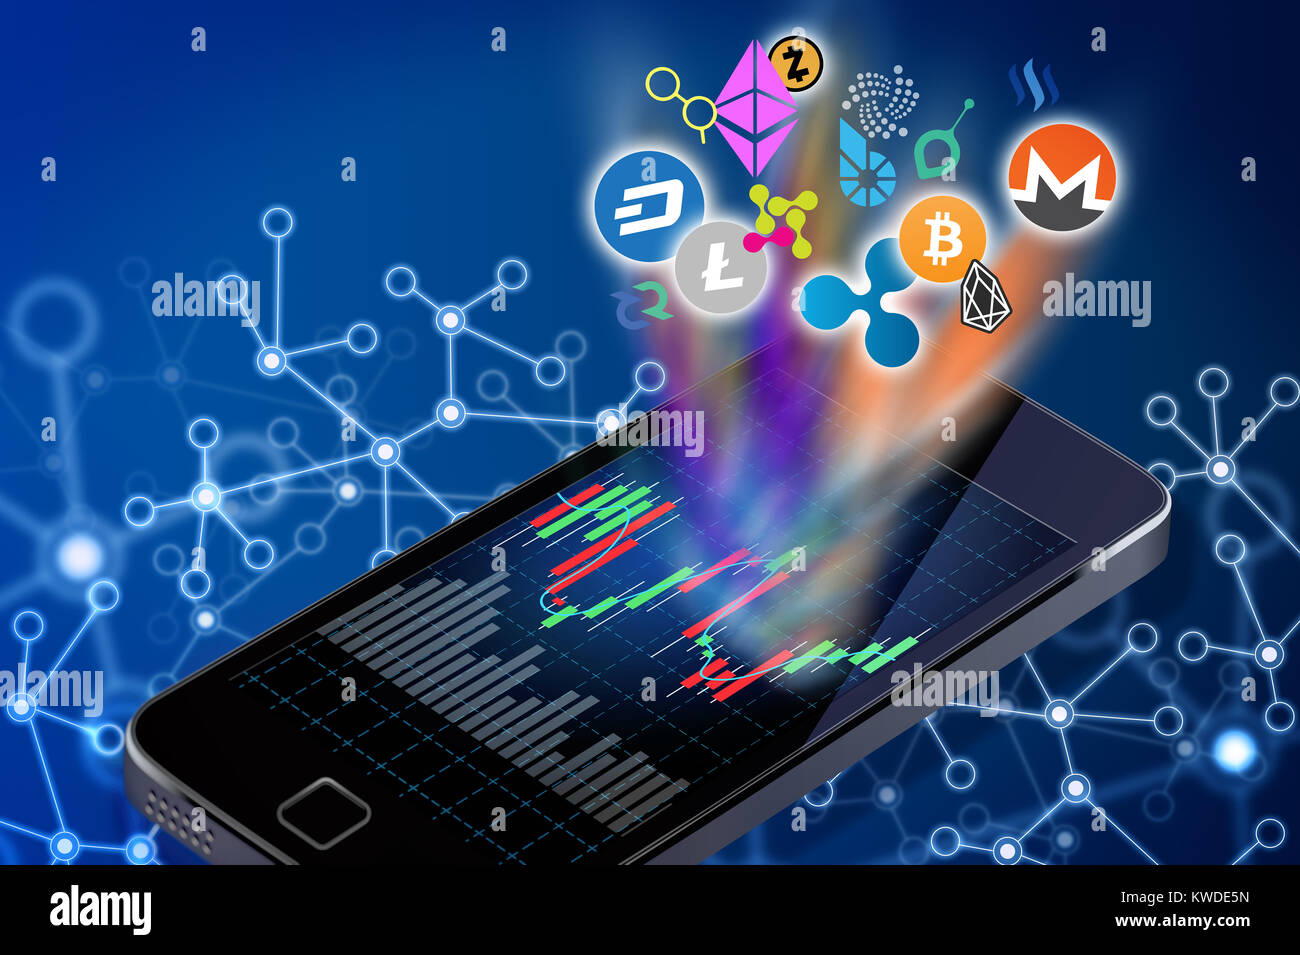 Conceptual illustration of altcoins cryptocurrency logos coming out of a cellphone screen. - Stock Image